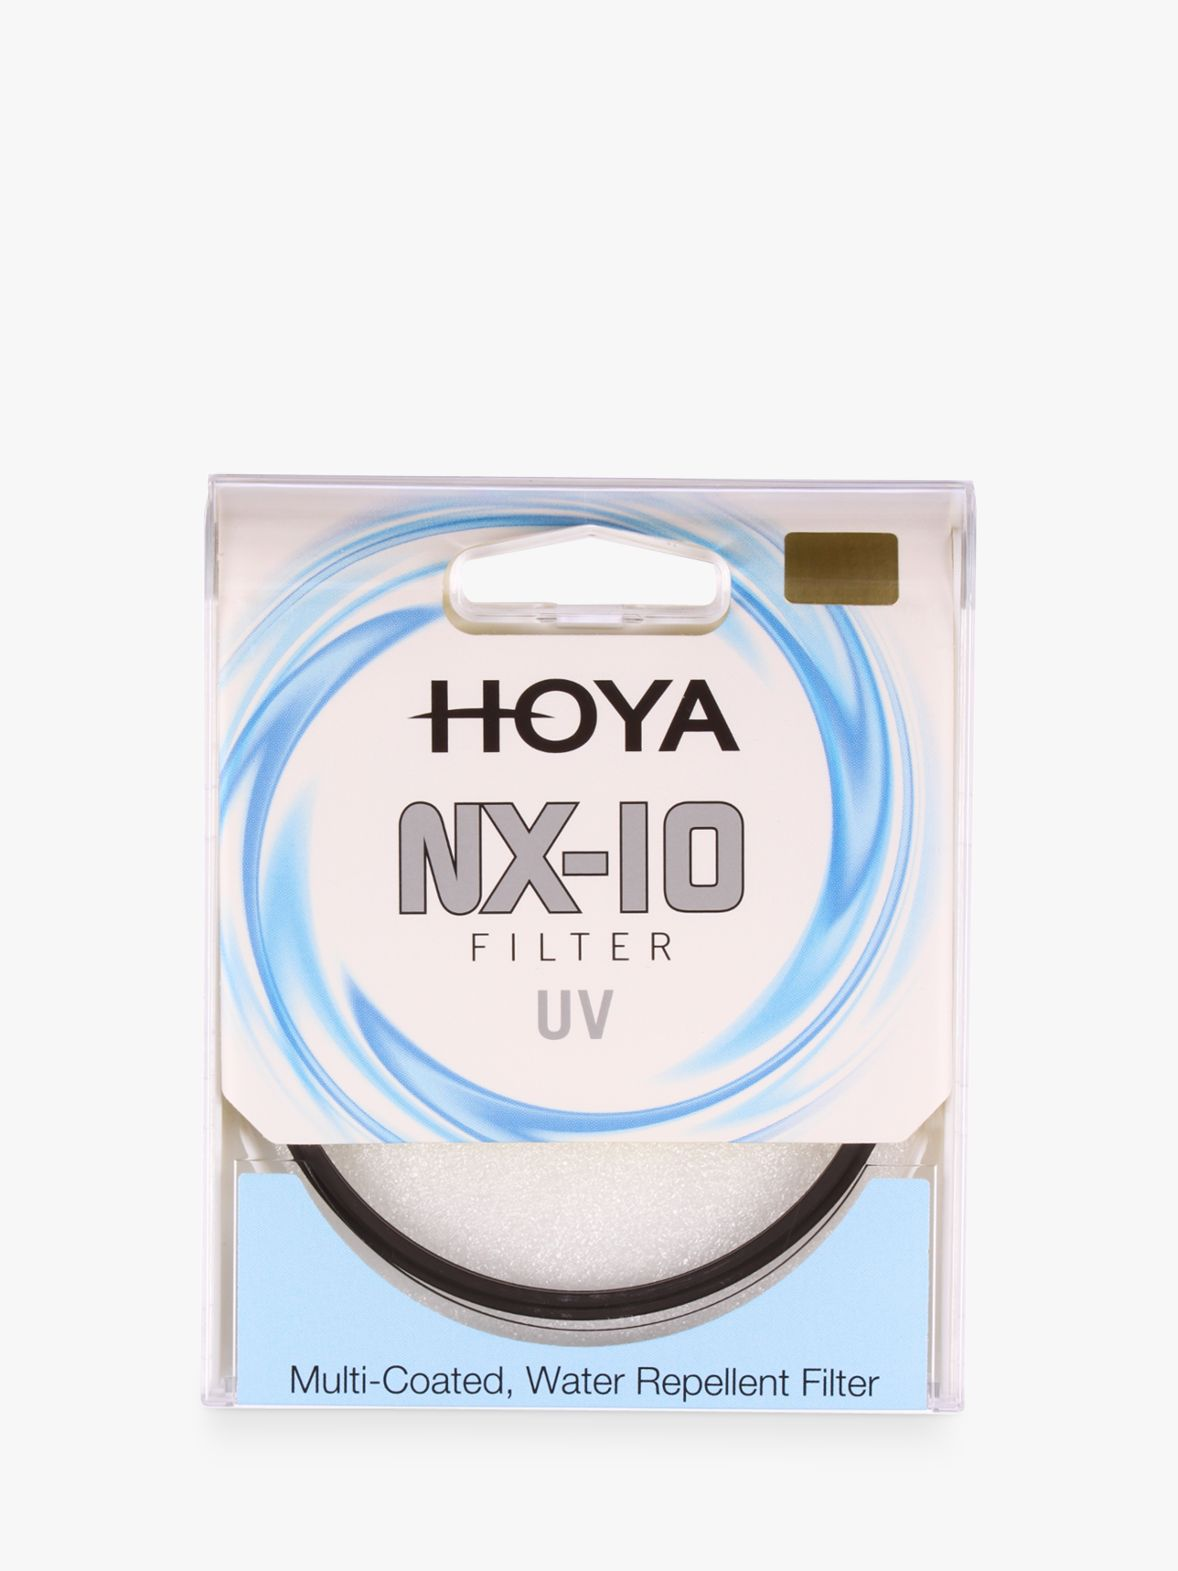 Hoya Hoya NX-10 UV Lens Filter, 67mm